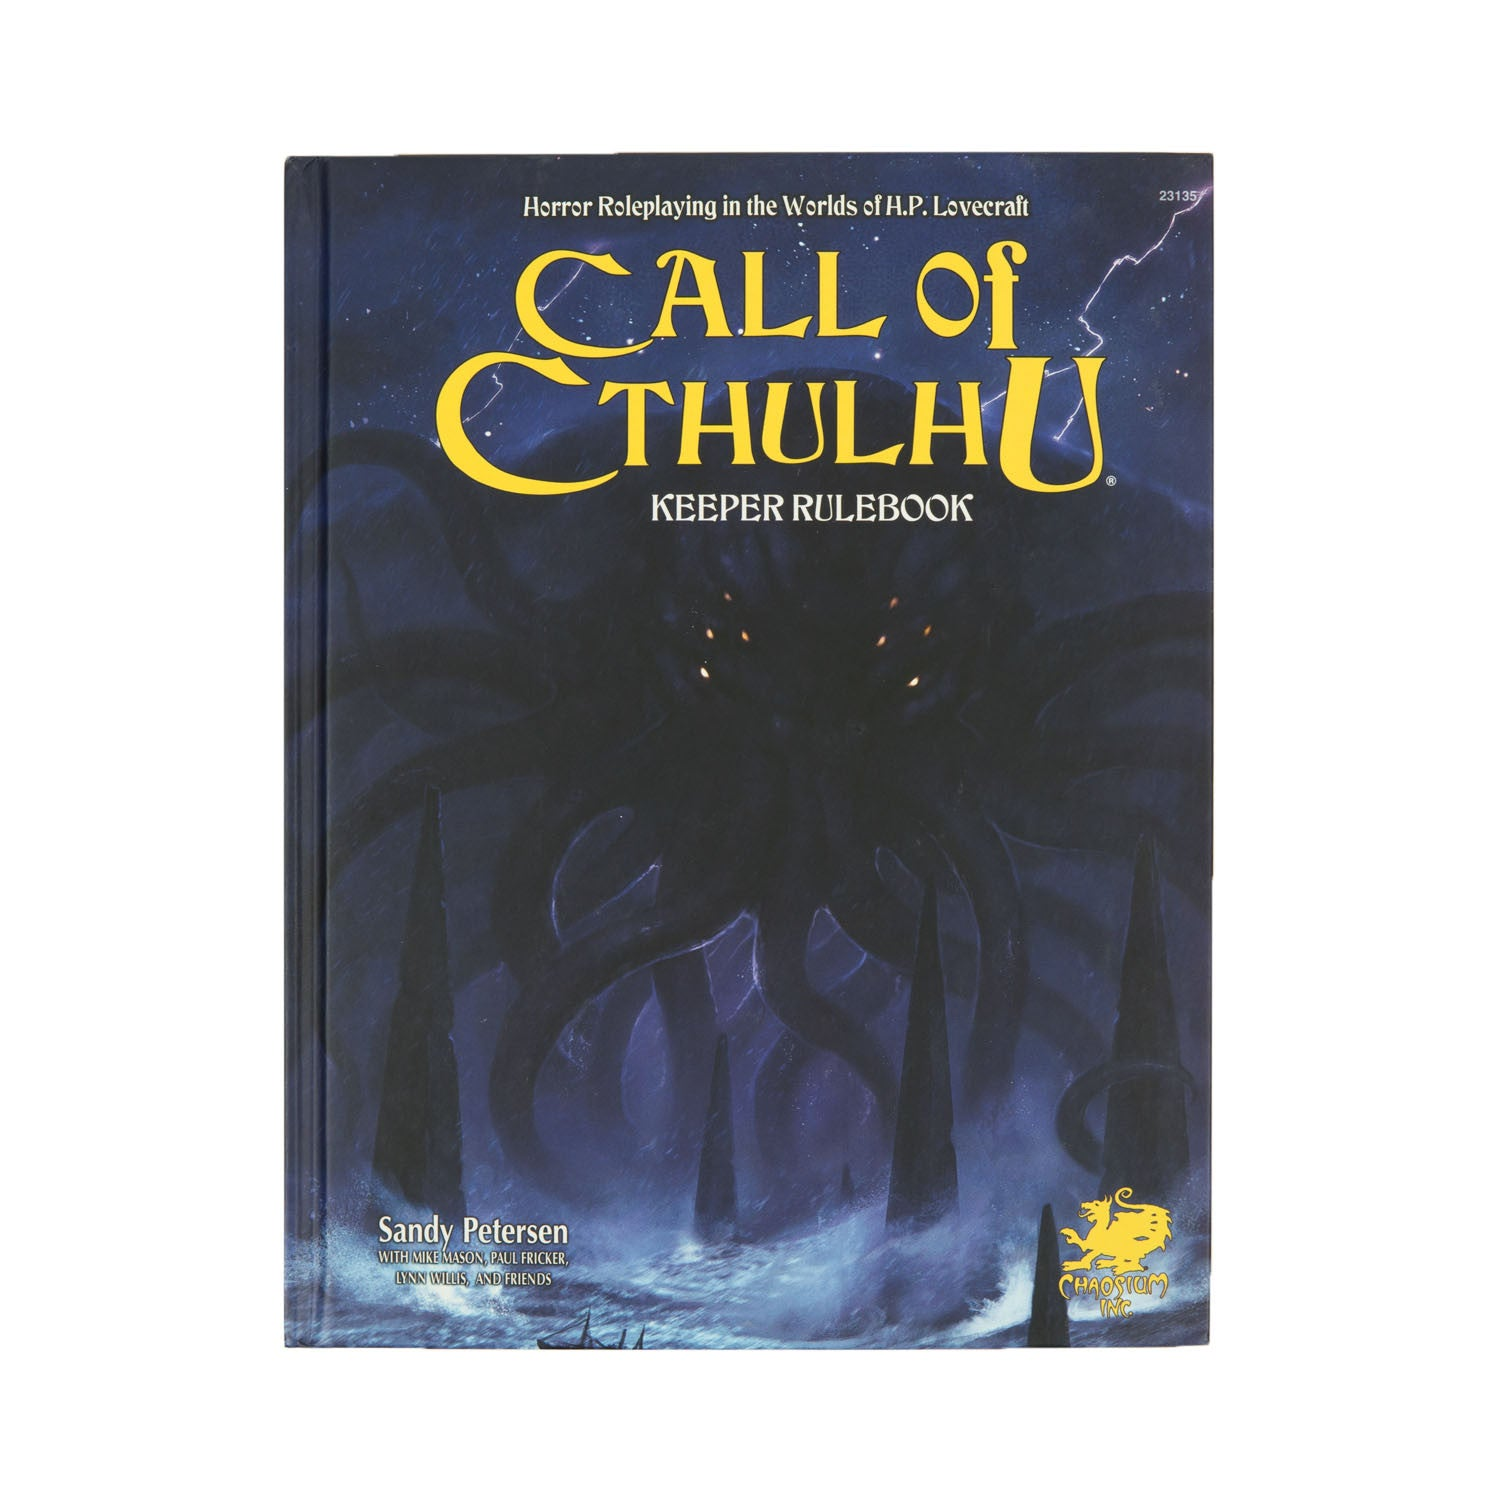 Call of Cthulhu RPG Keeper Rulebook 7th Ed. (Hard Cover)